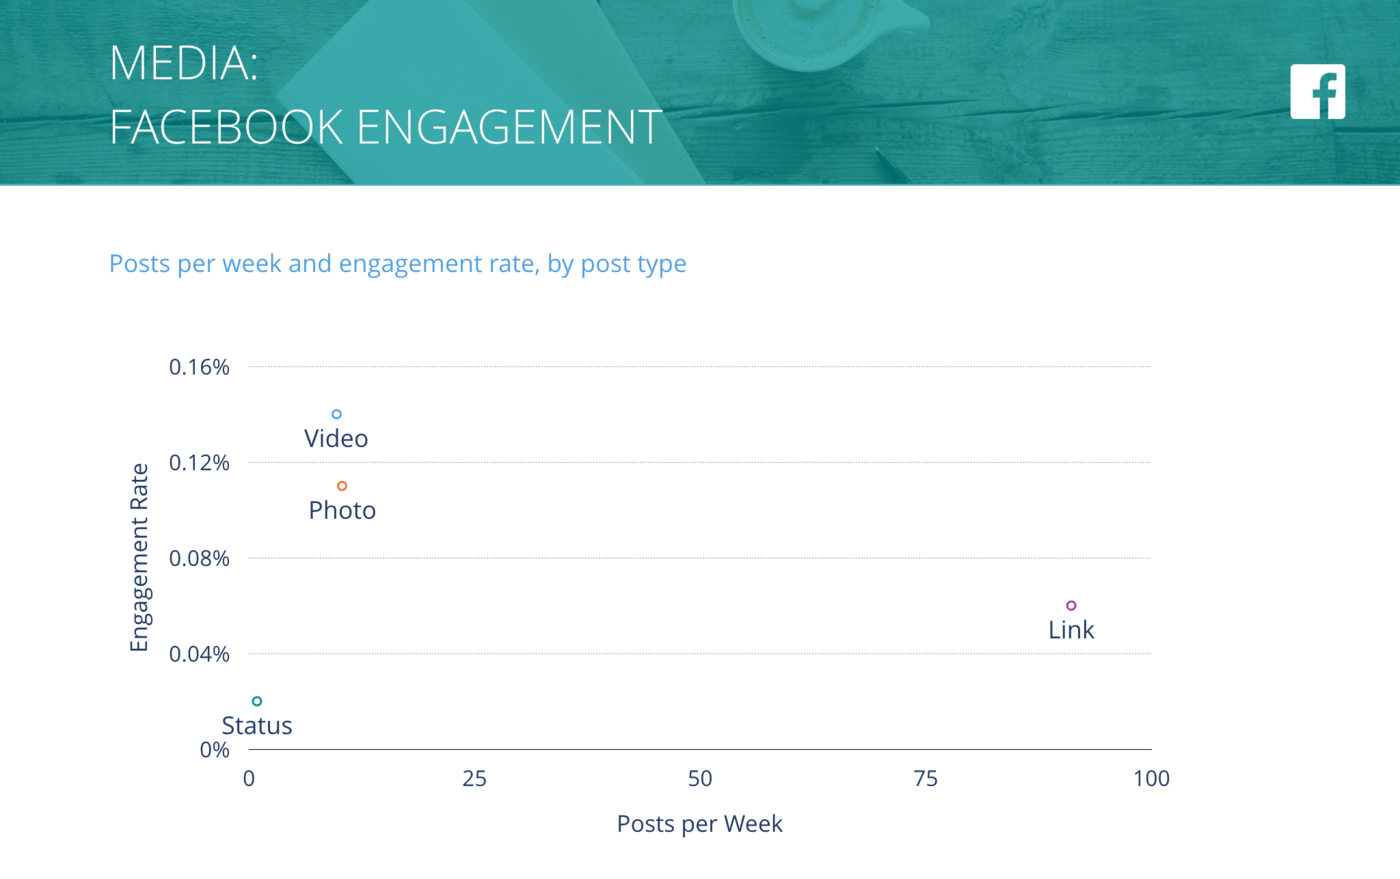 slide for Facebook Posts per Week vs. Engagement Rate per Post, Media Companies